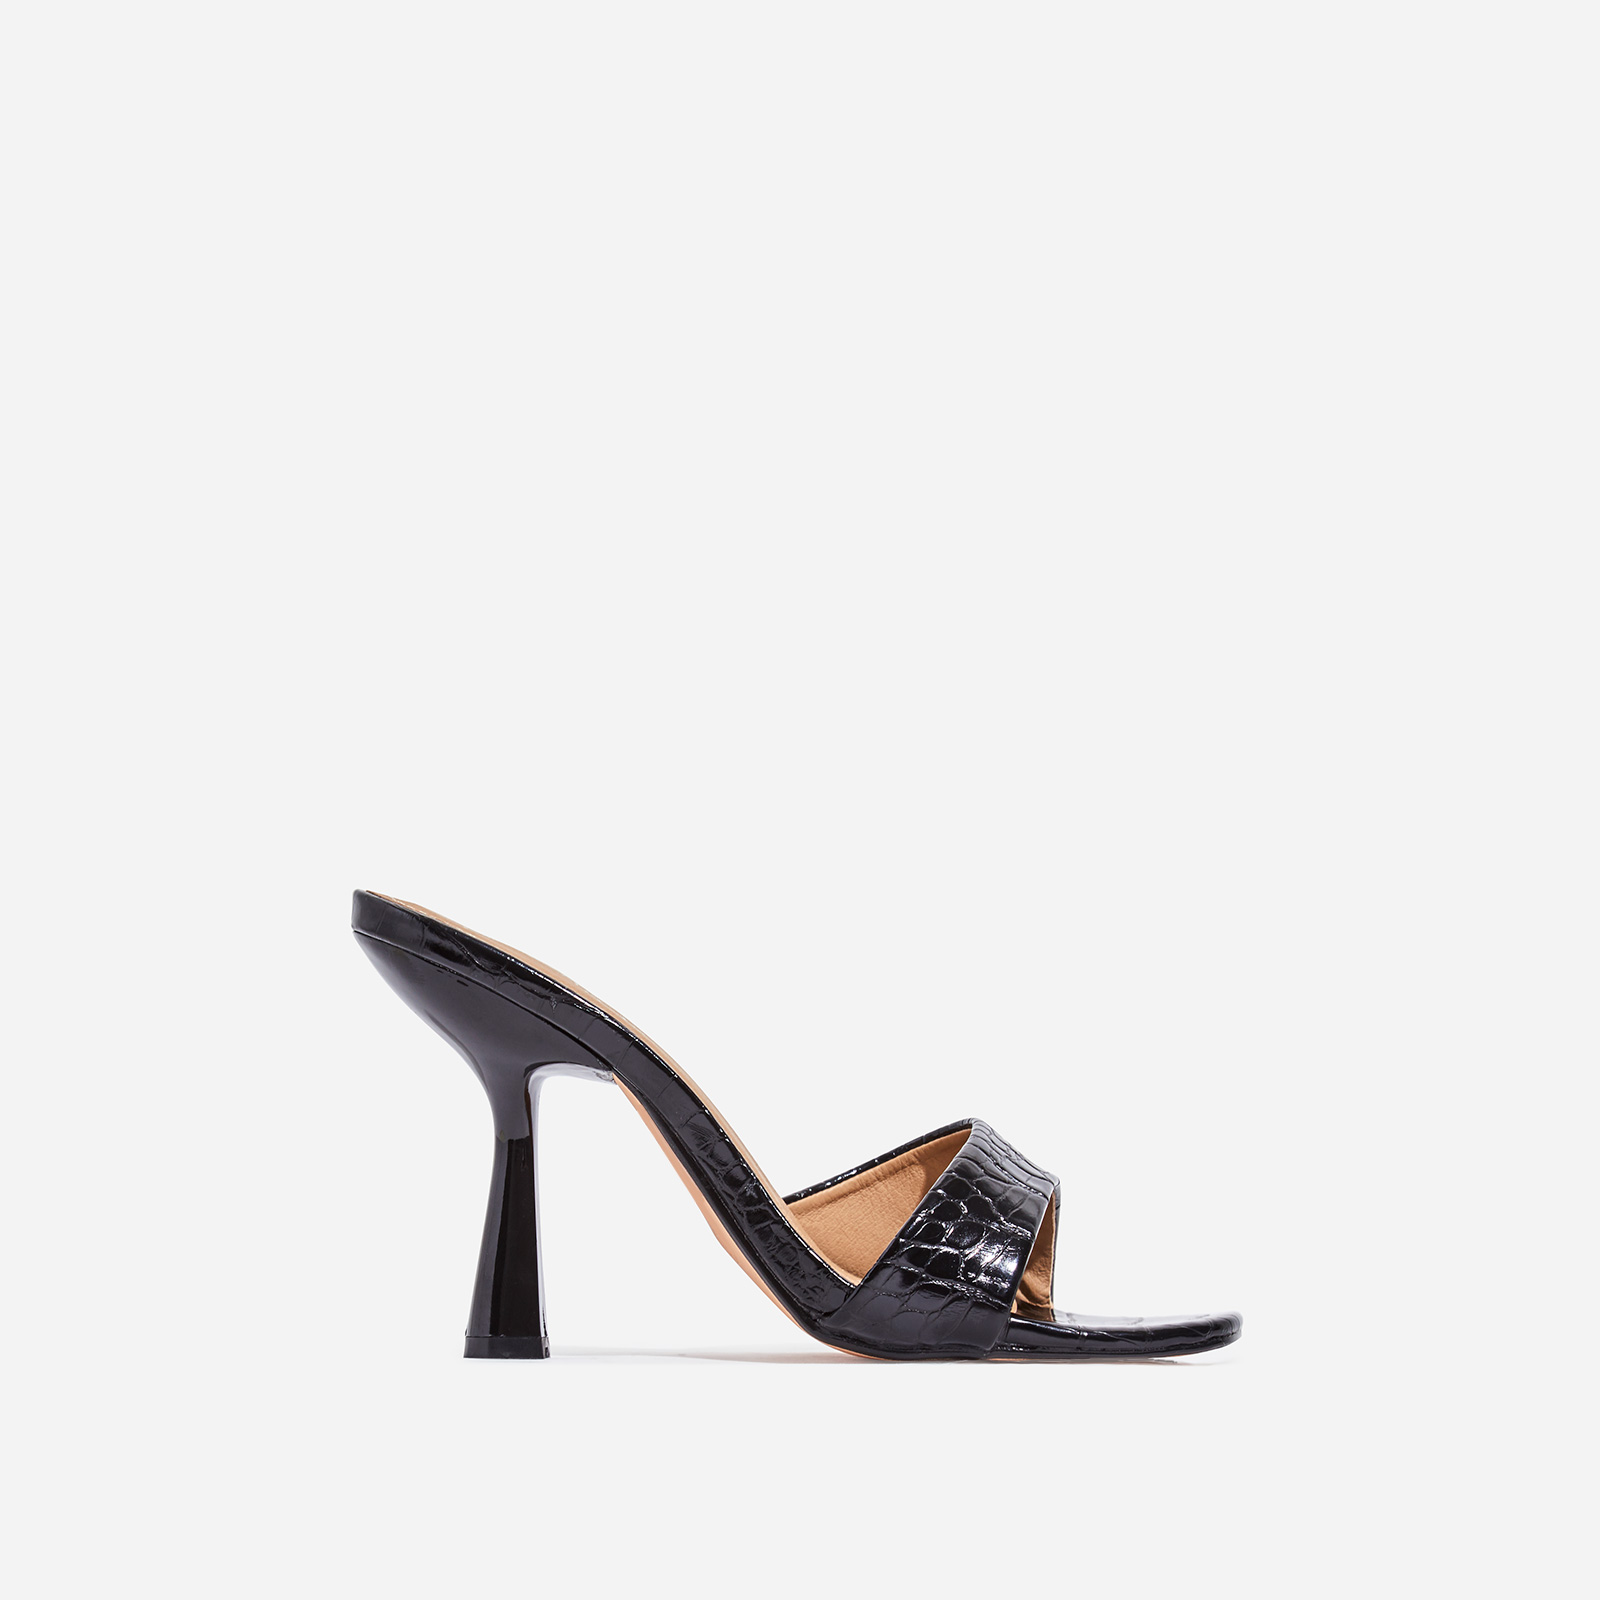 Found Square Peep Toe Heel Mule In Black Croc Print Faux Leather